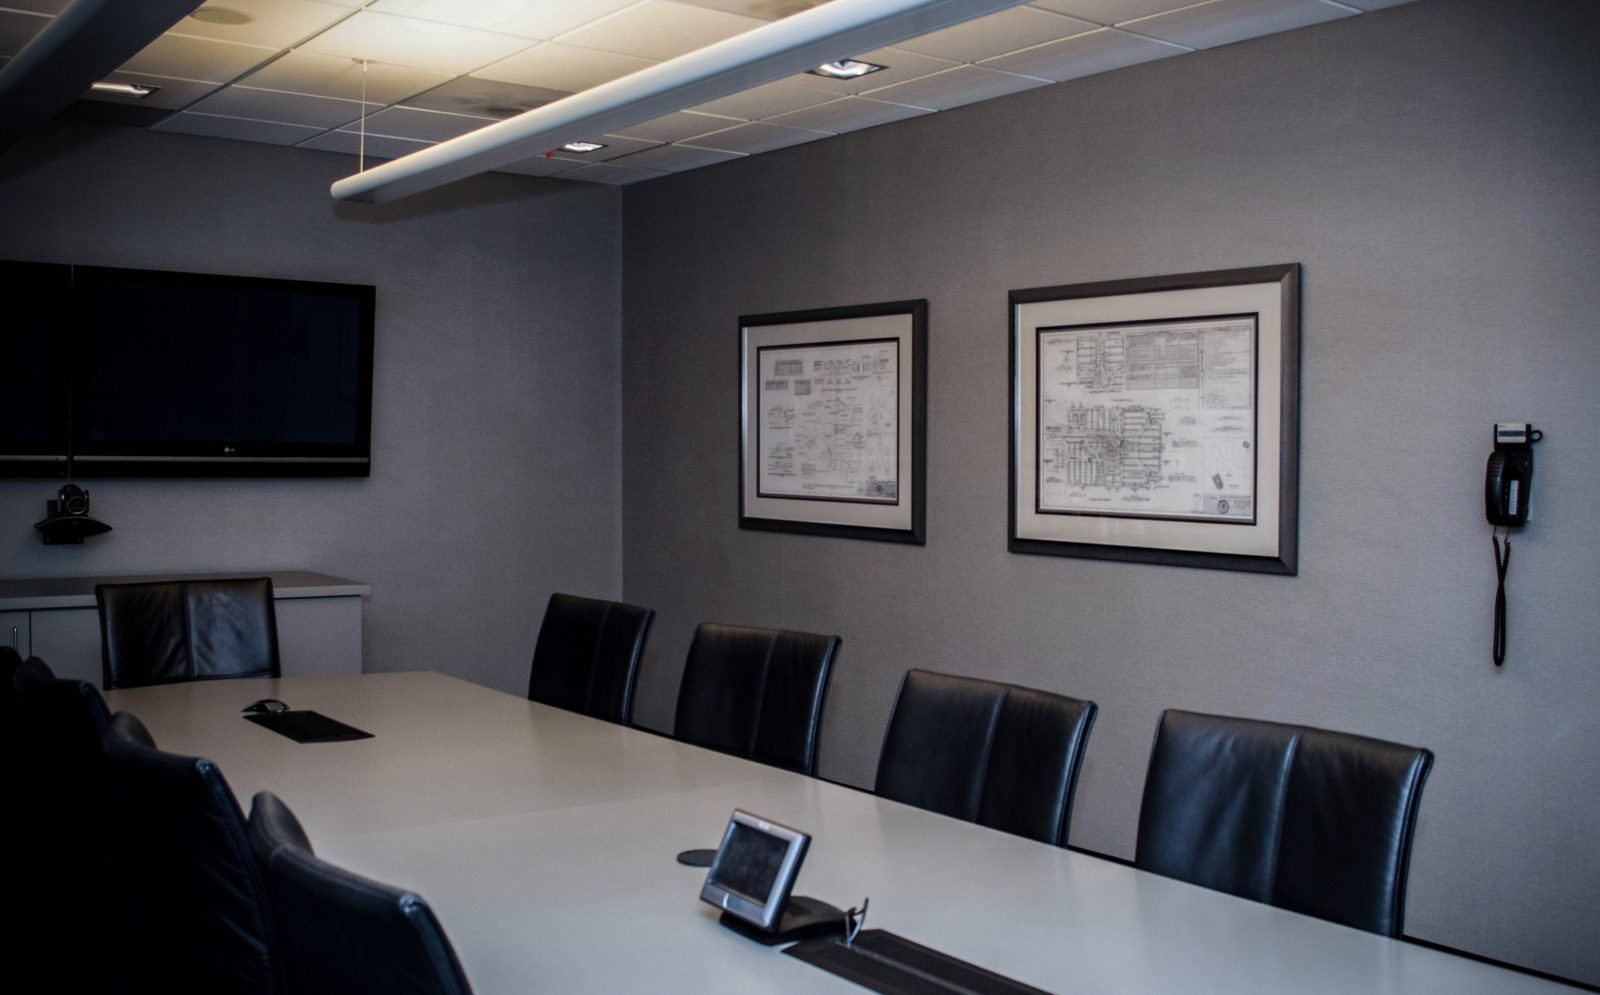 framed blueprints on the wall of a conference room